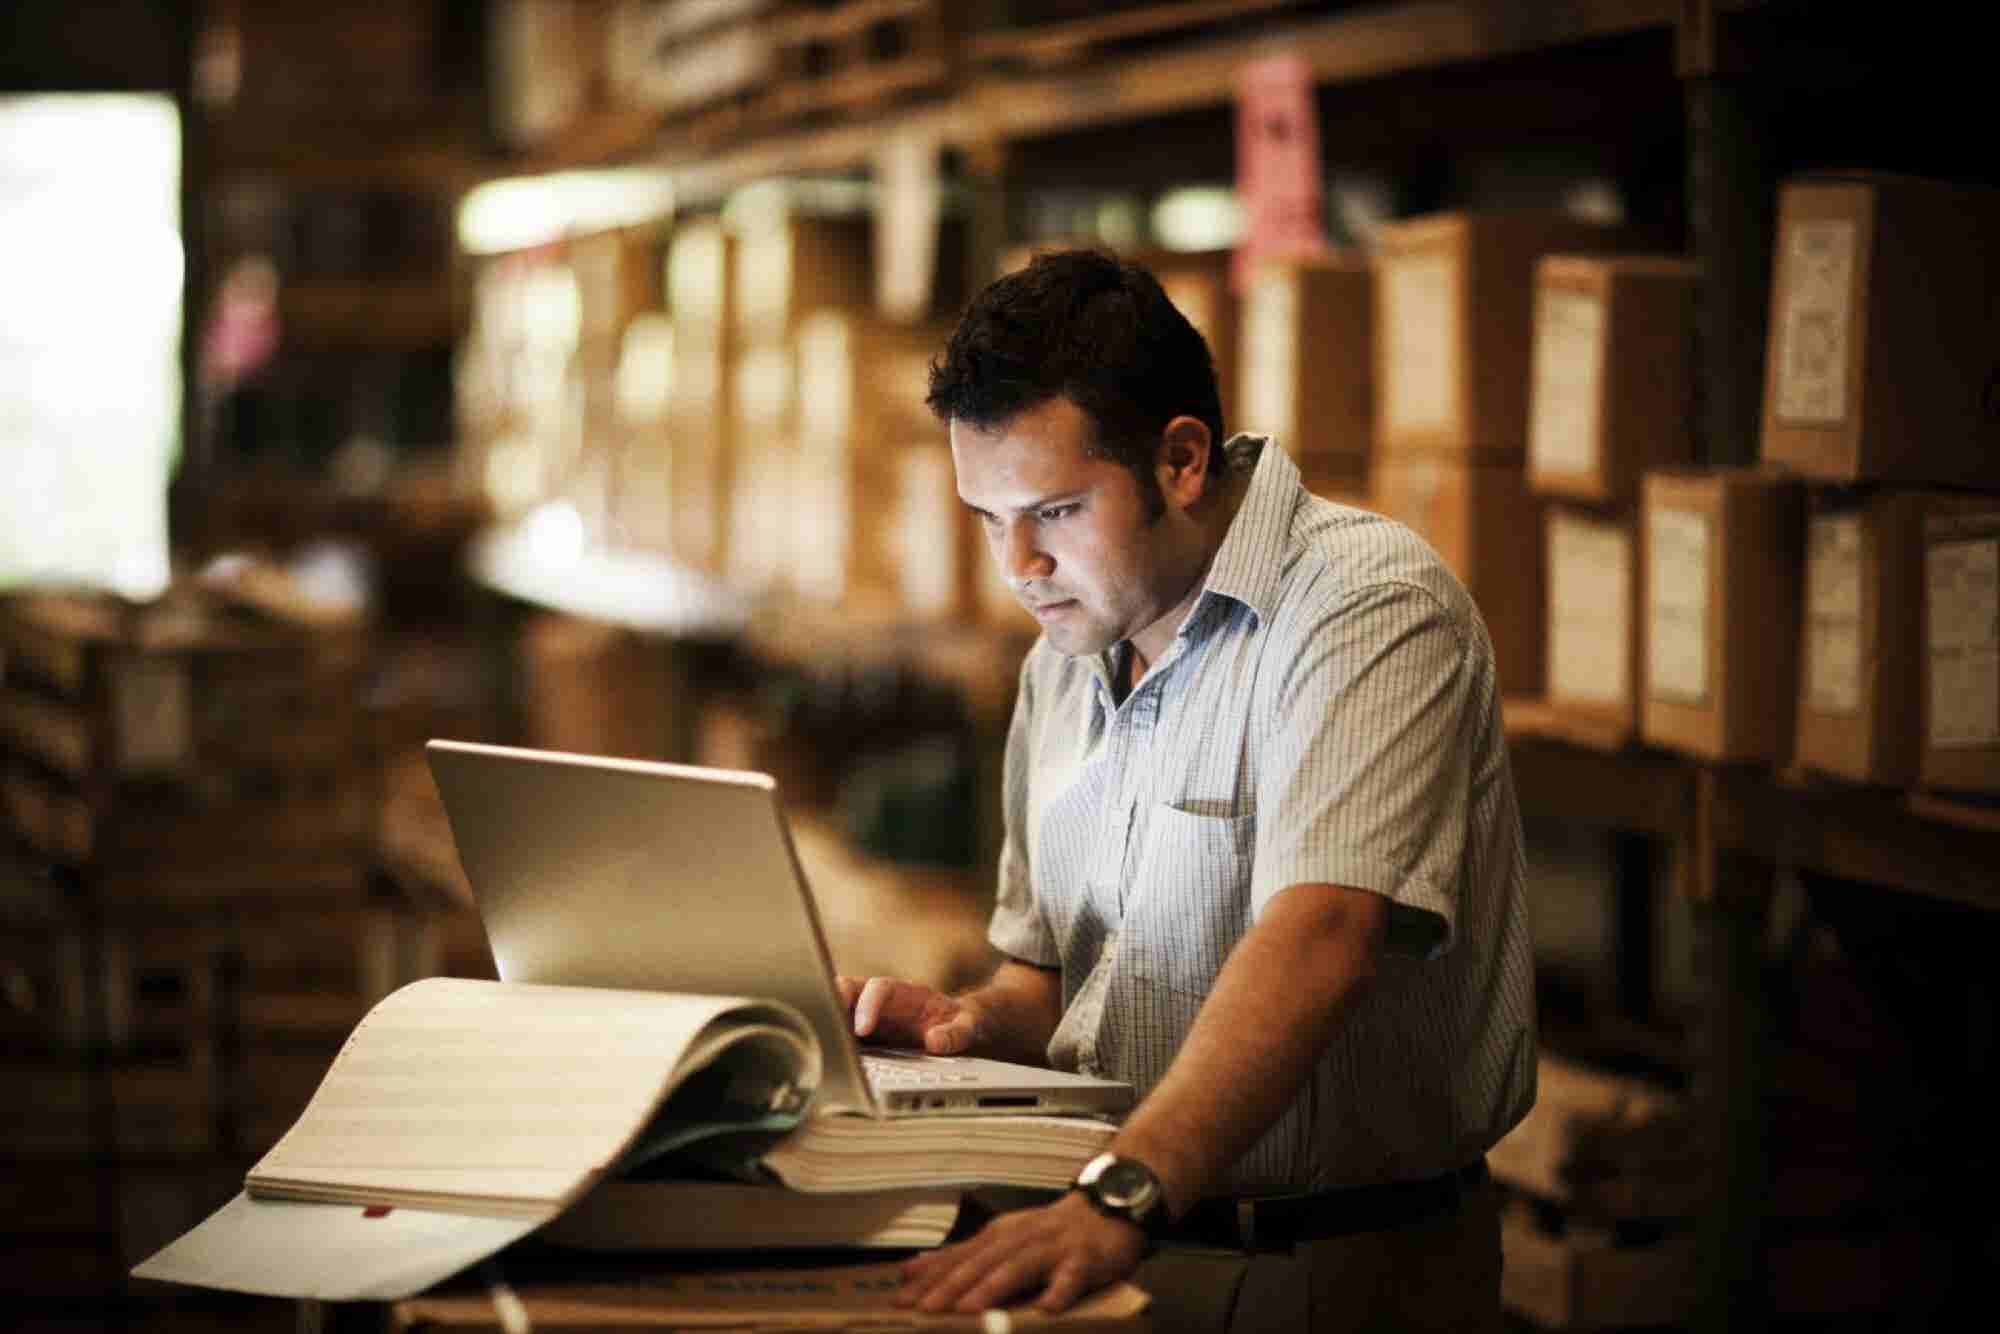 Should You Keep 'Working for the Man' or Start Your Own Business?